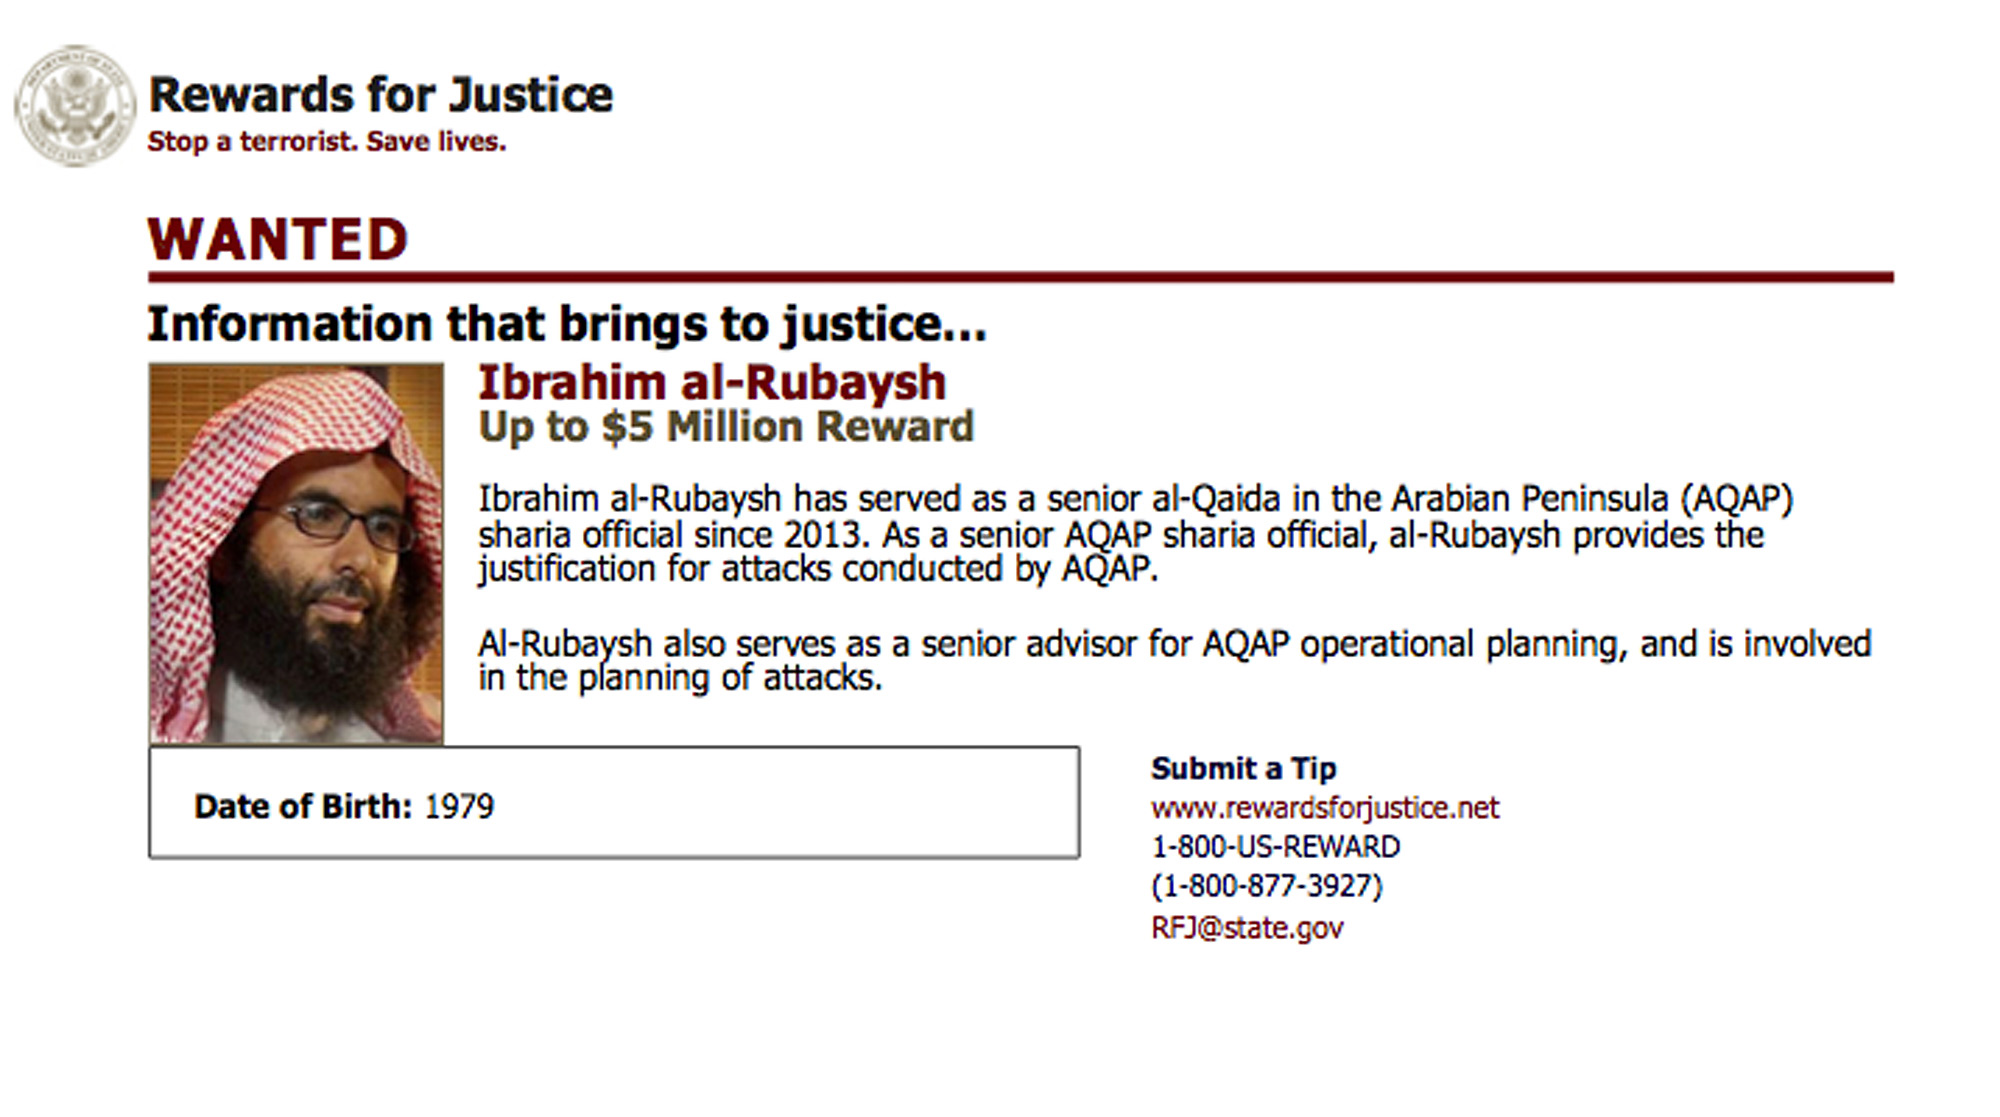 This wanted poster from website of the U.S. State Department's Rewards For Justice program shows a mugshot of Ibrahim al-Rubaish, the top cleric of Yemen's al-Qaida branch.